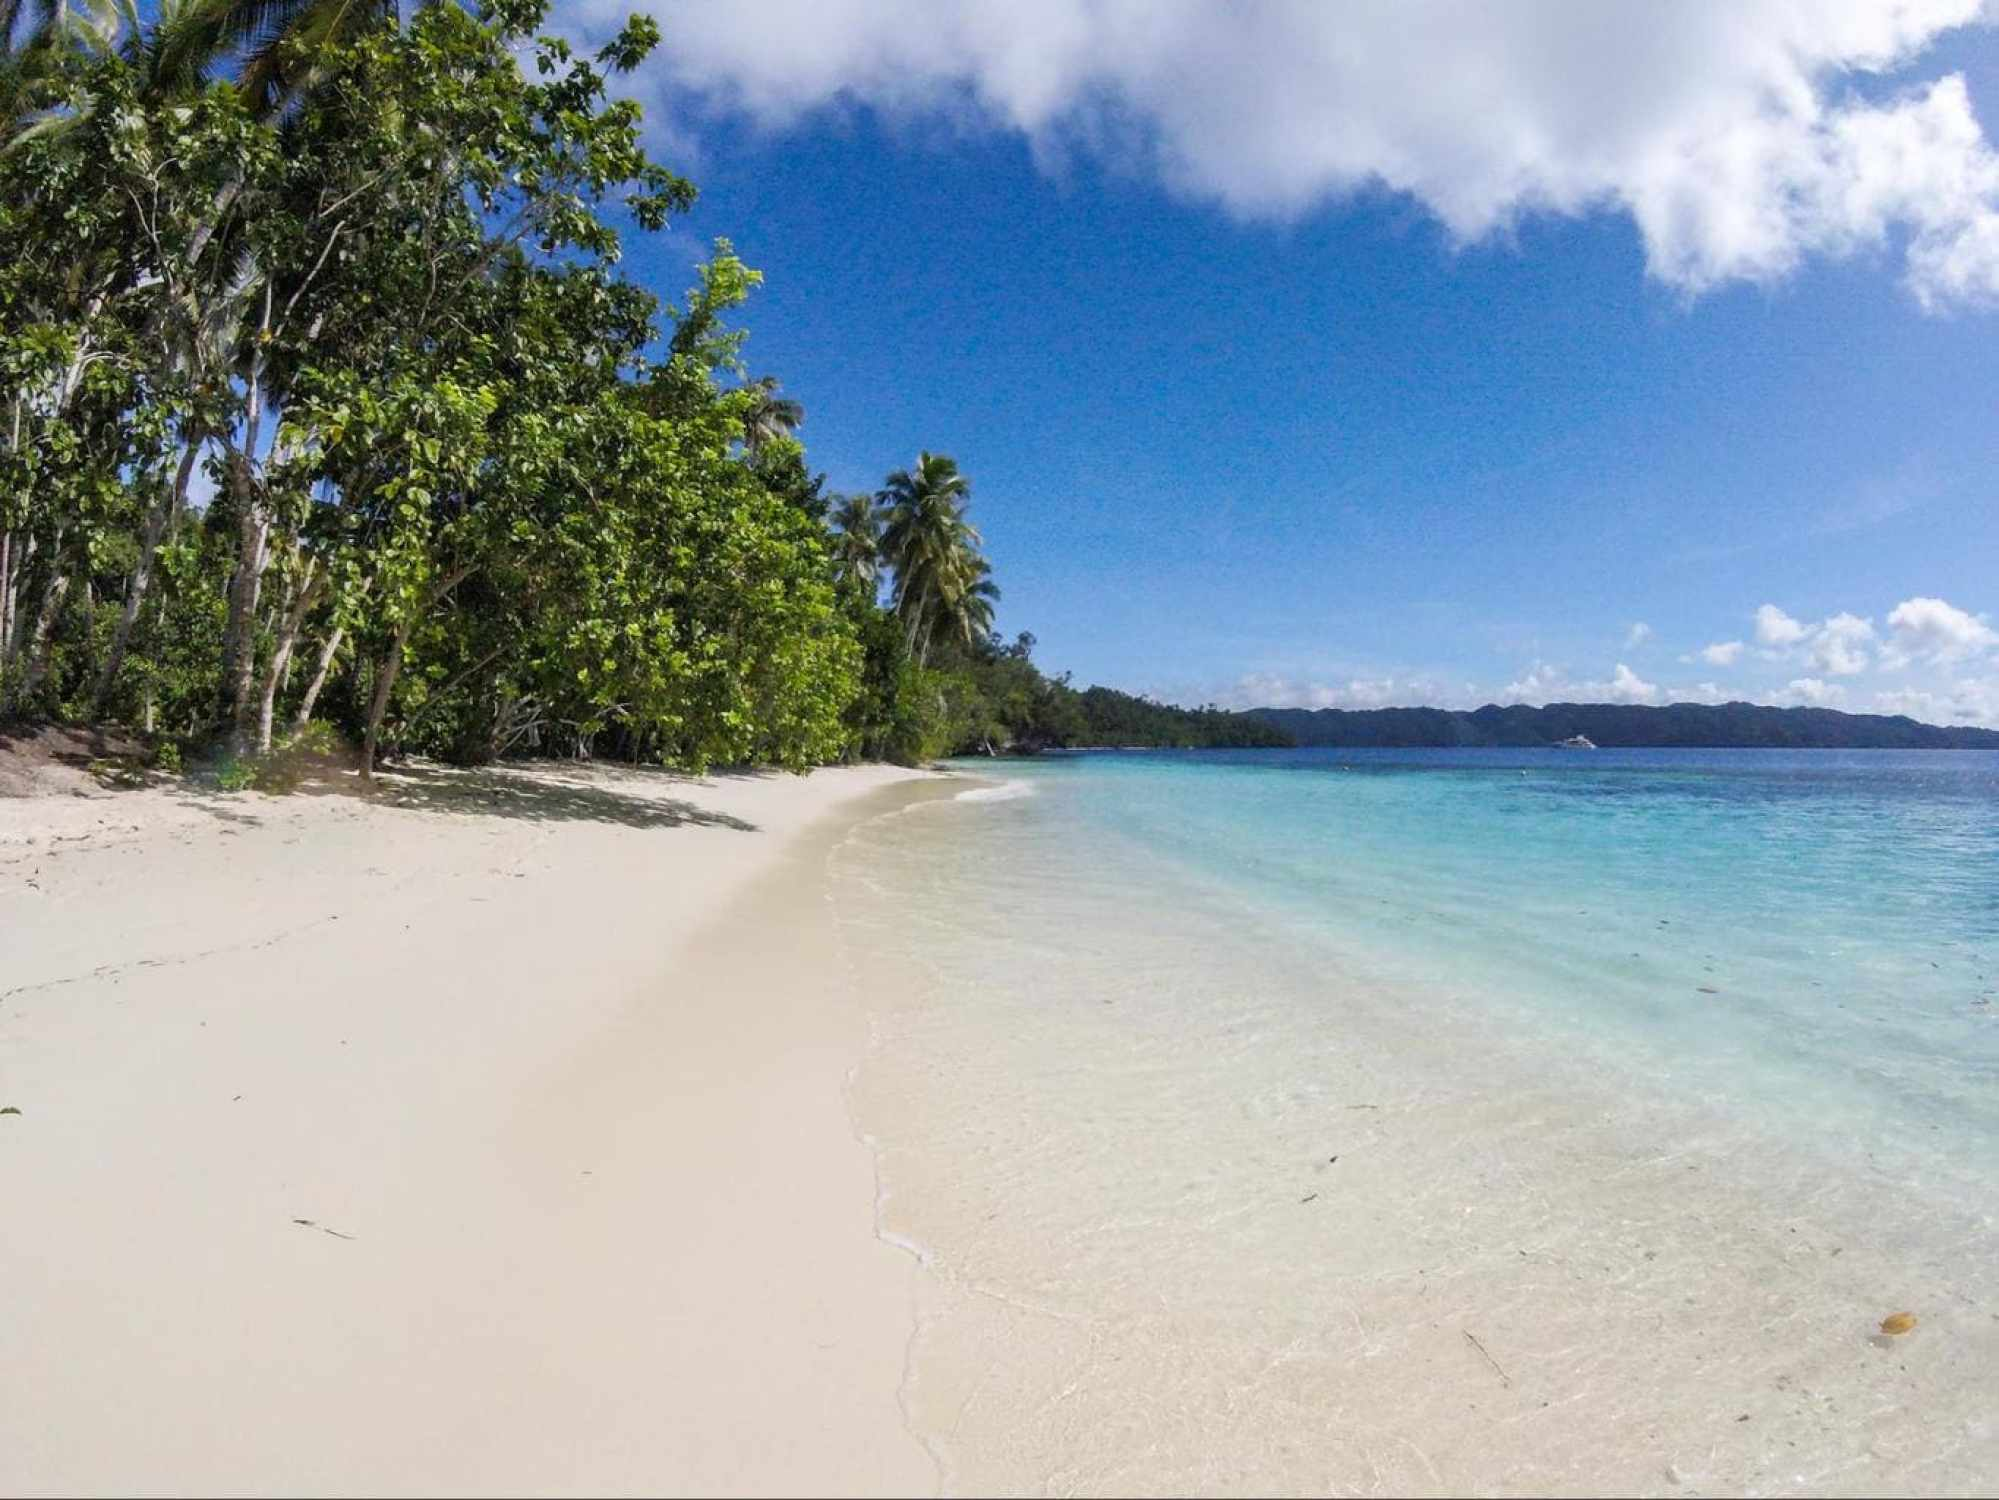 Gam Island in Raja Ampat, one of the most remote beaches in Indonesia